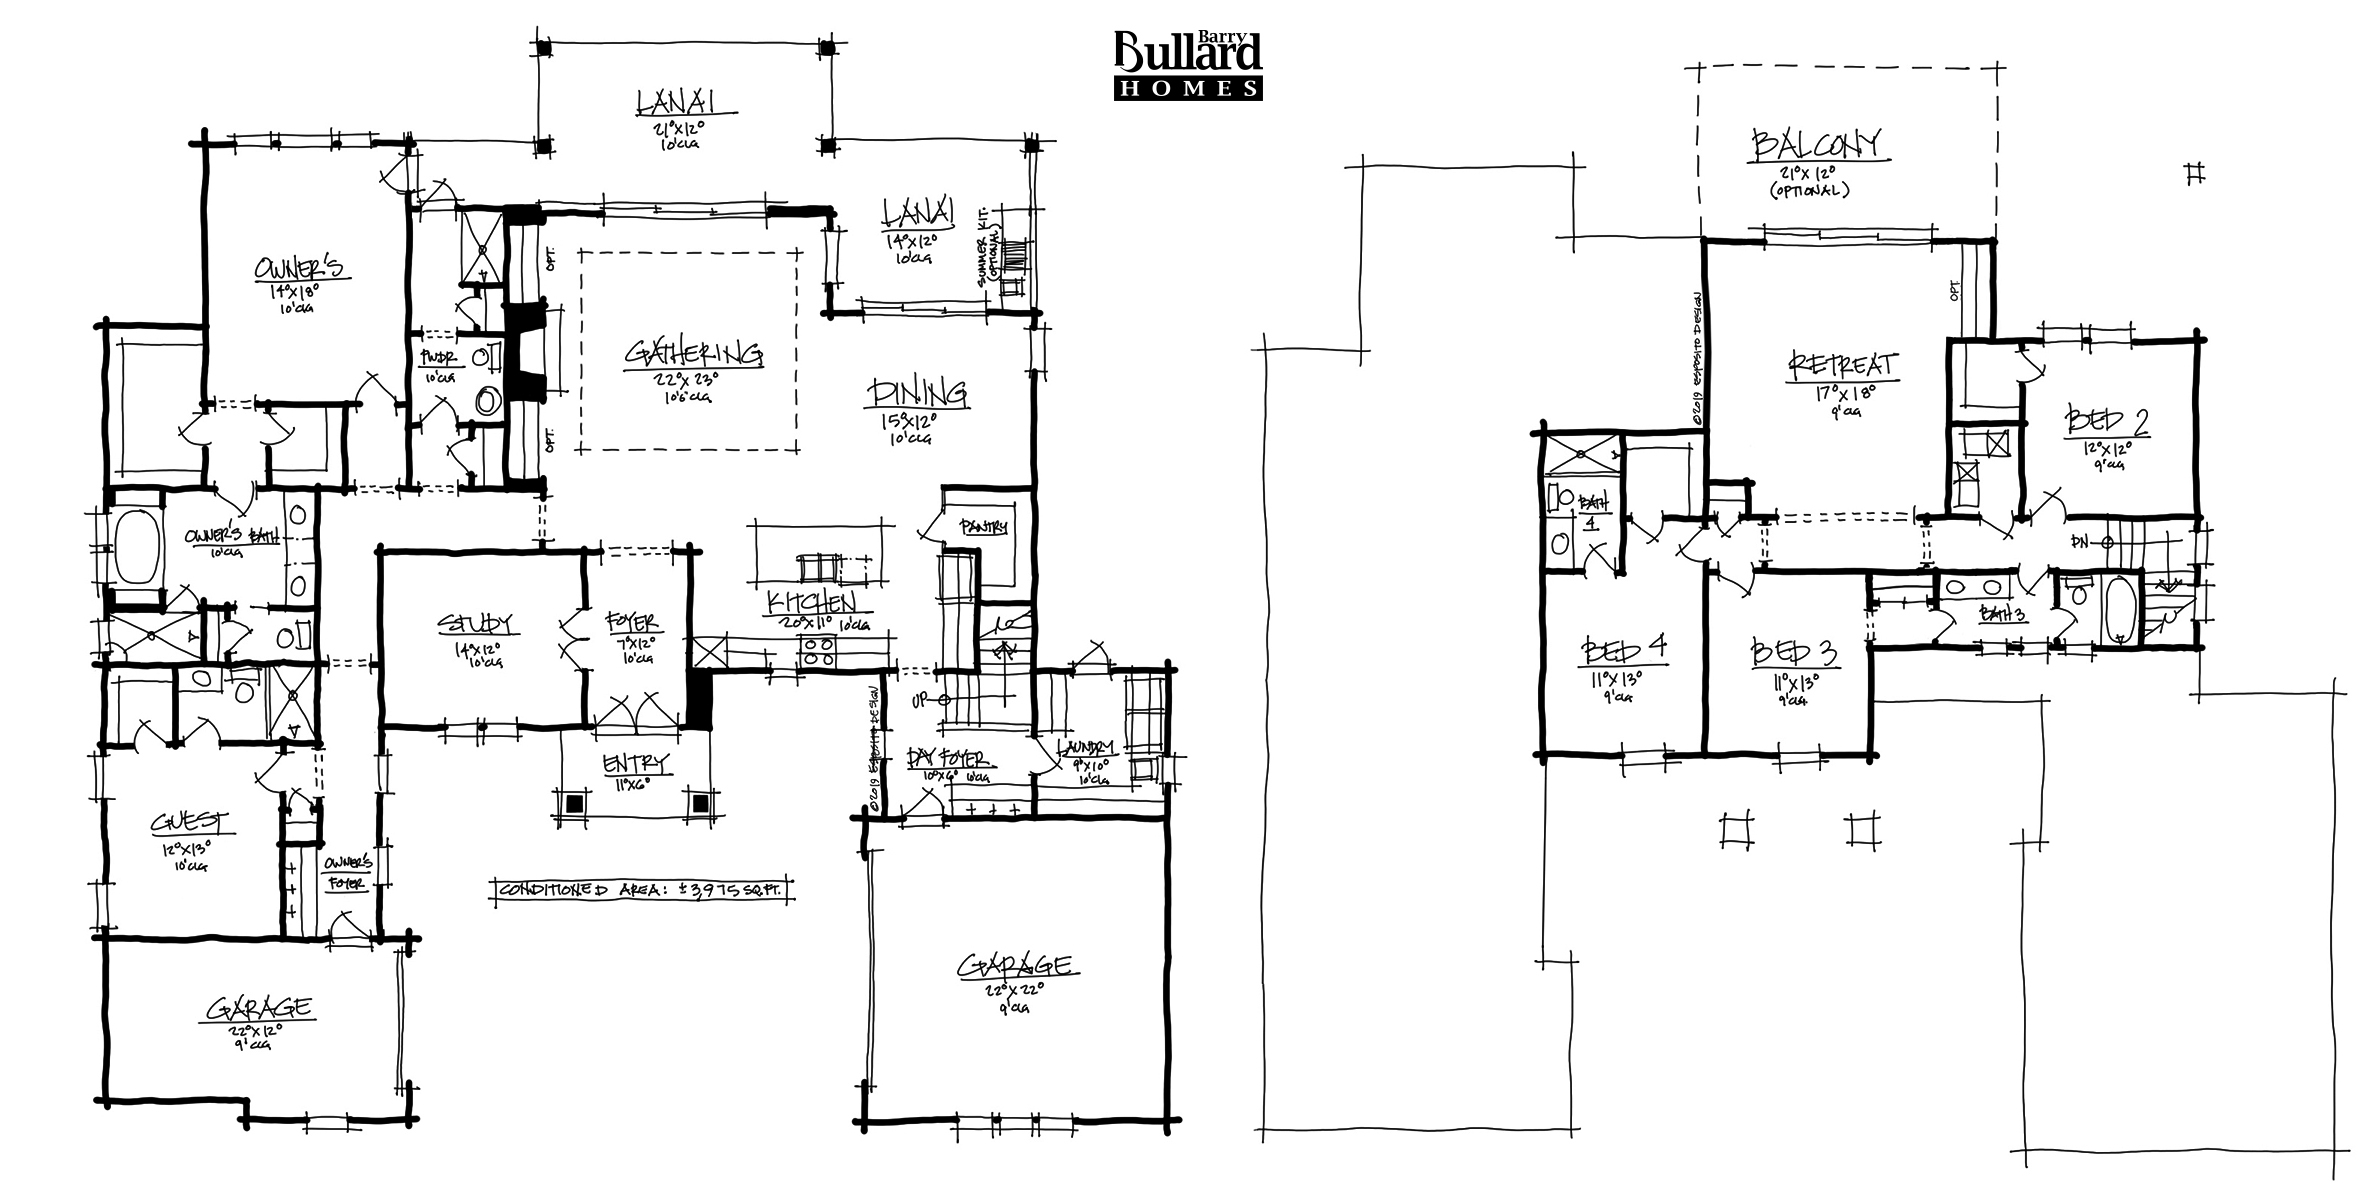 worthington floorplan specs